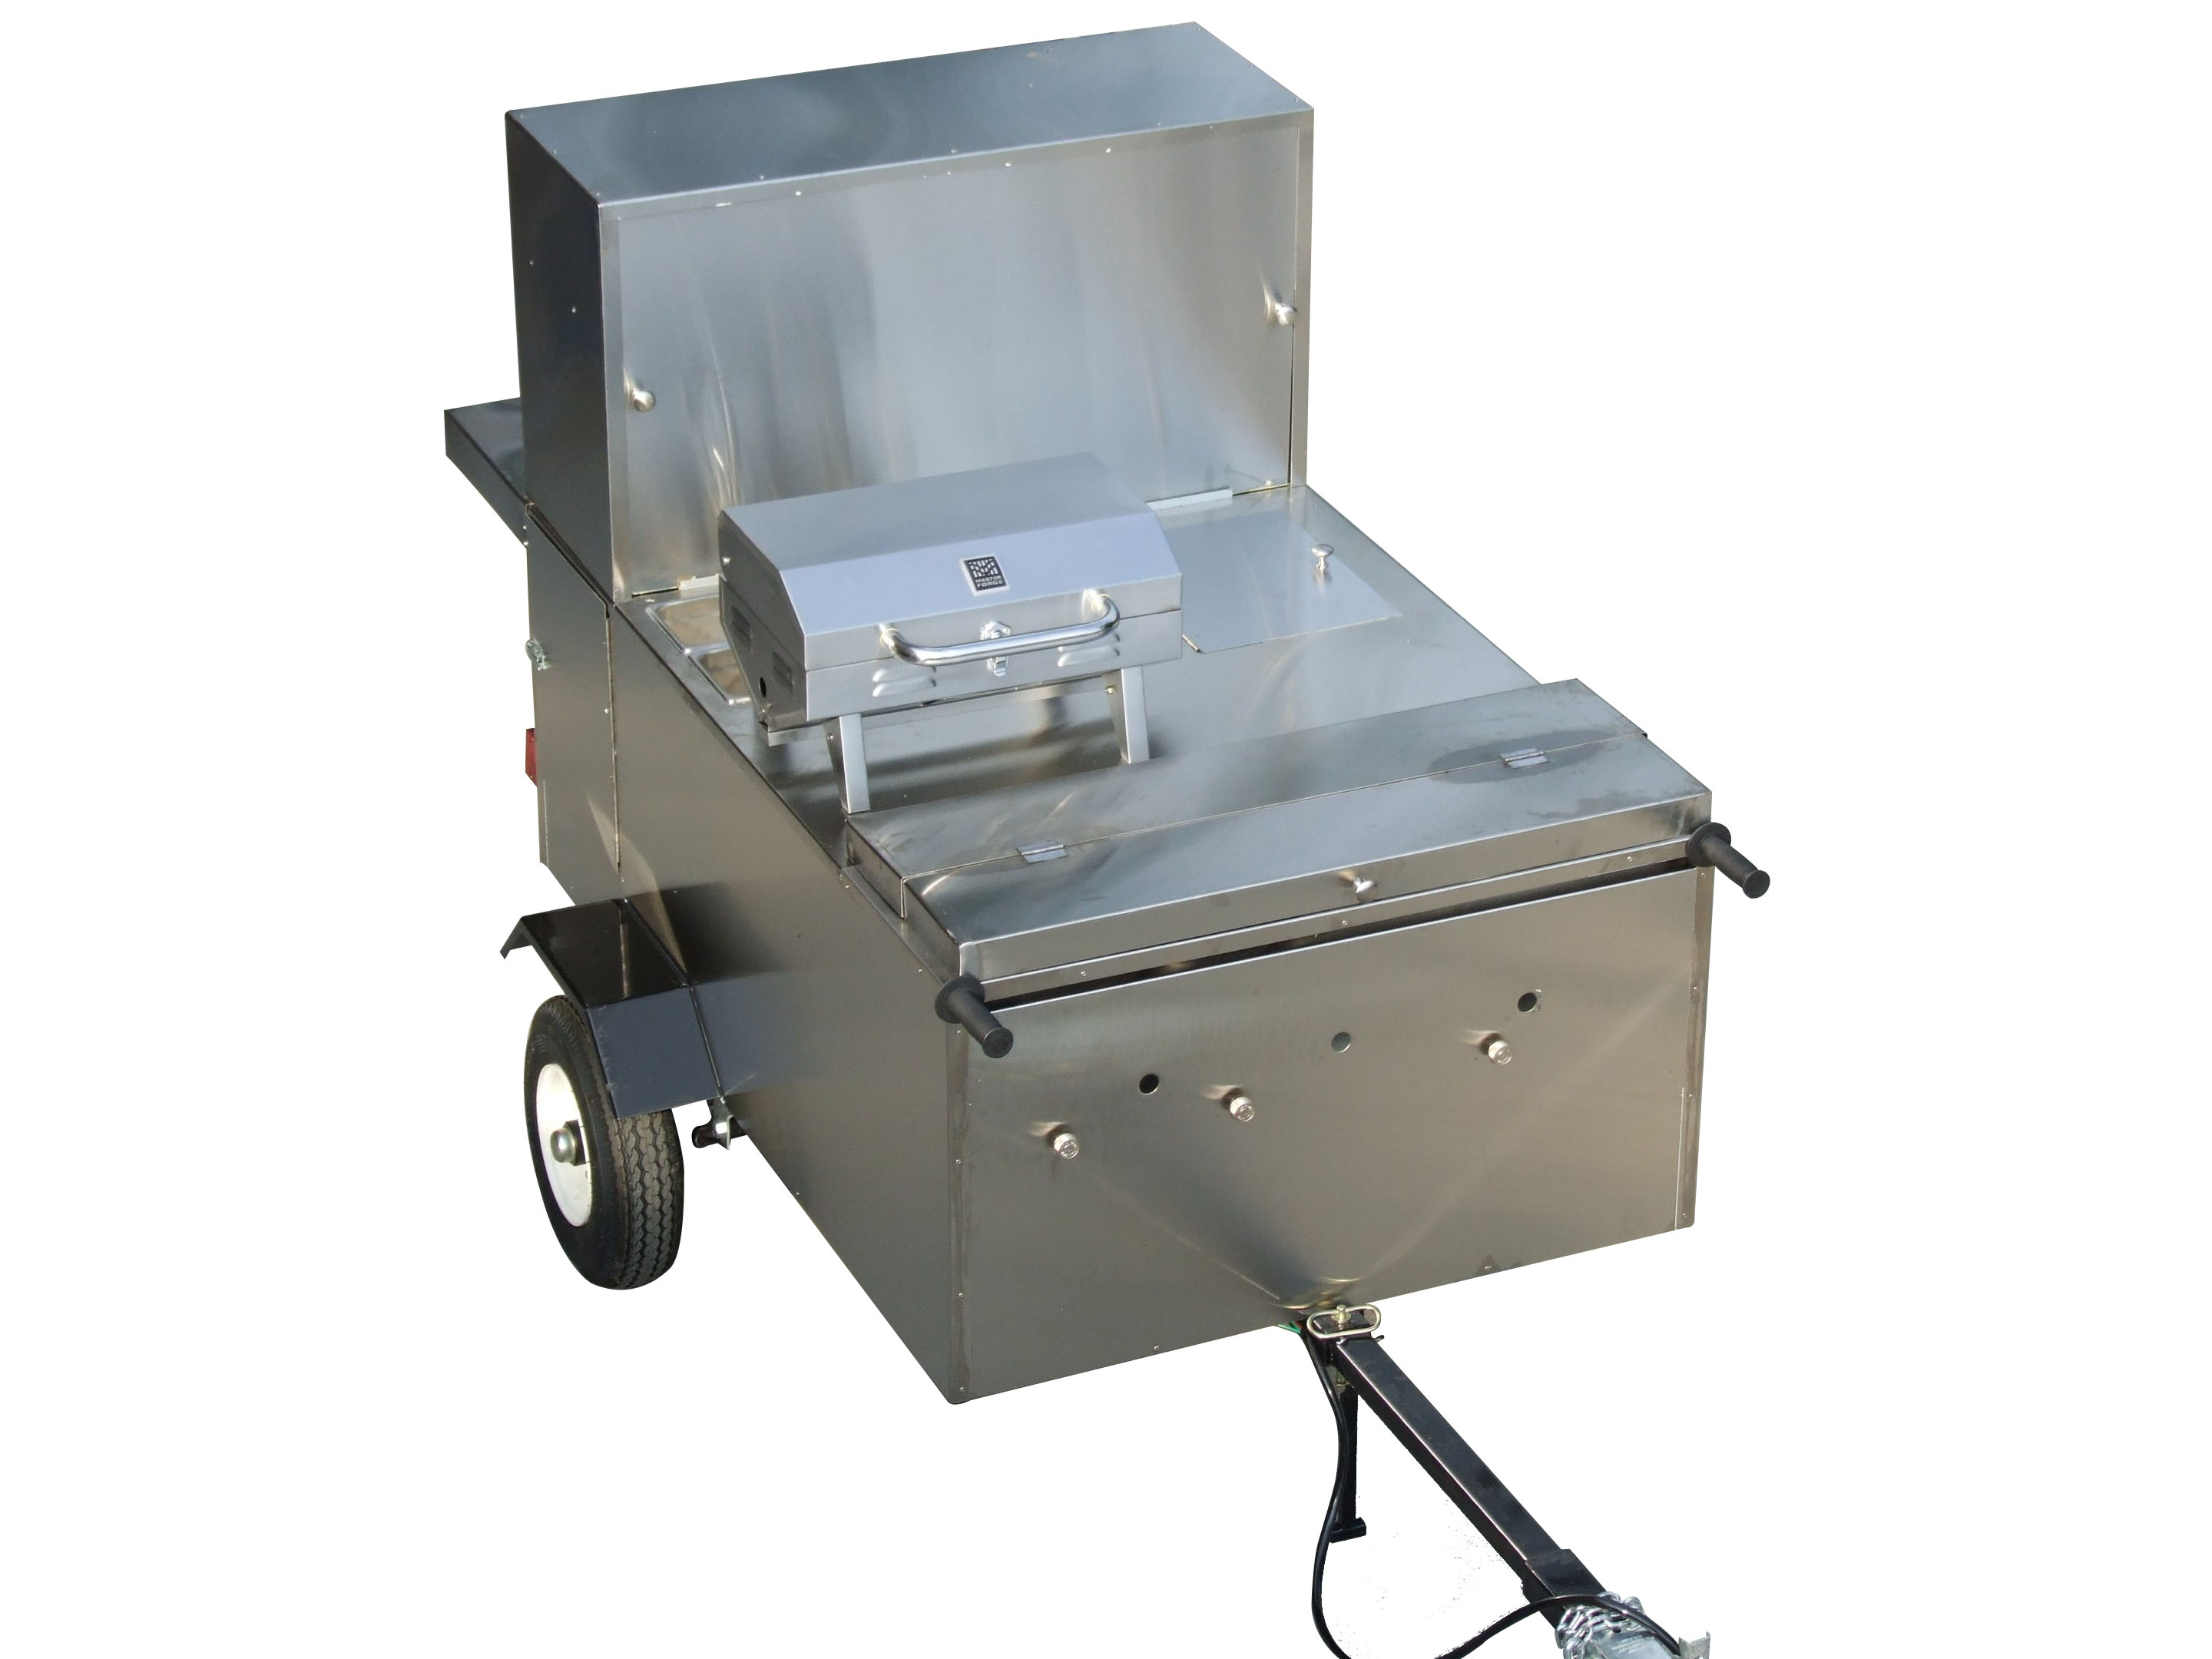 Hot Dog Stand For Sale Uk